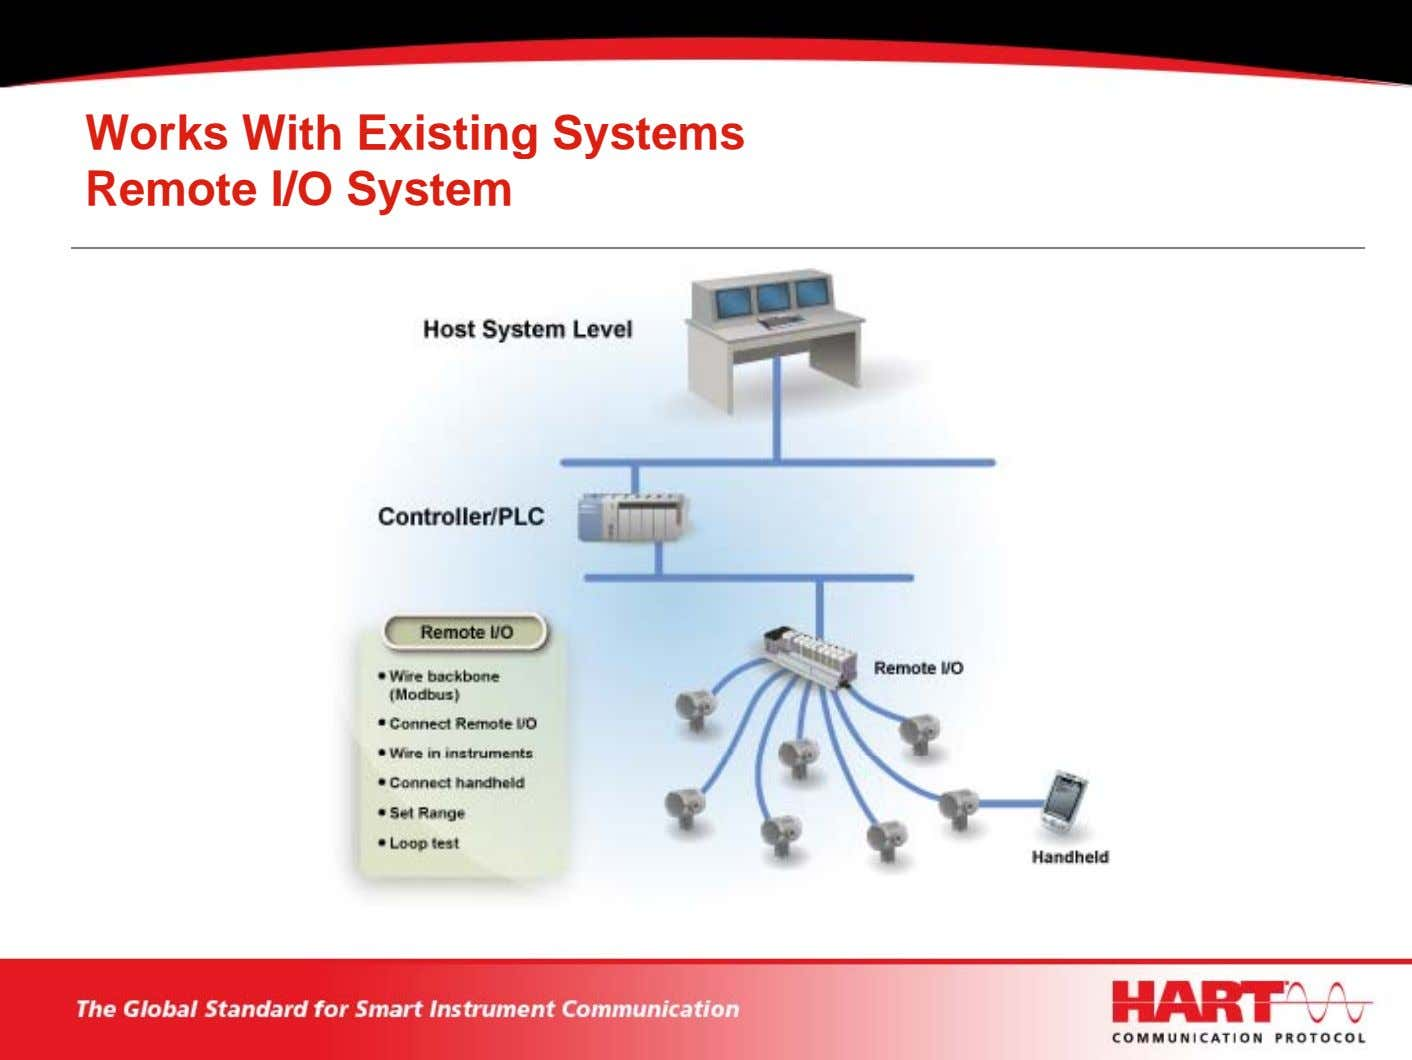 Works With Existing Systems Remote I/O System